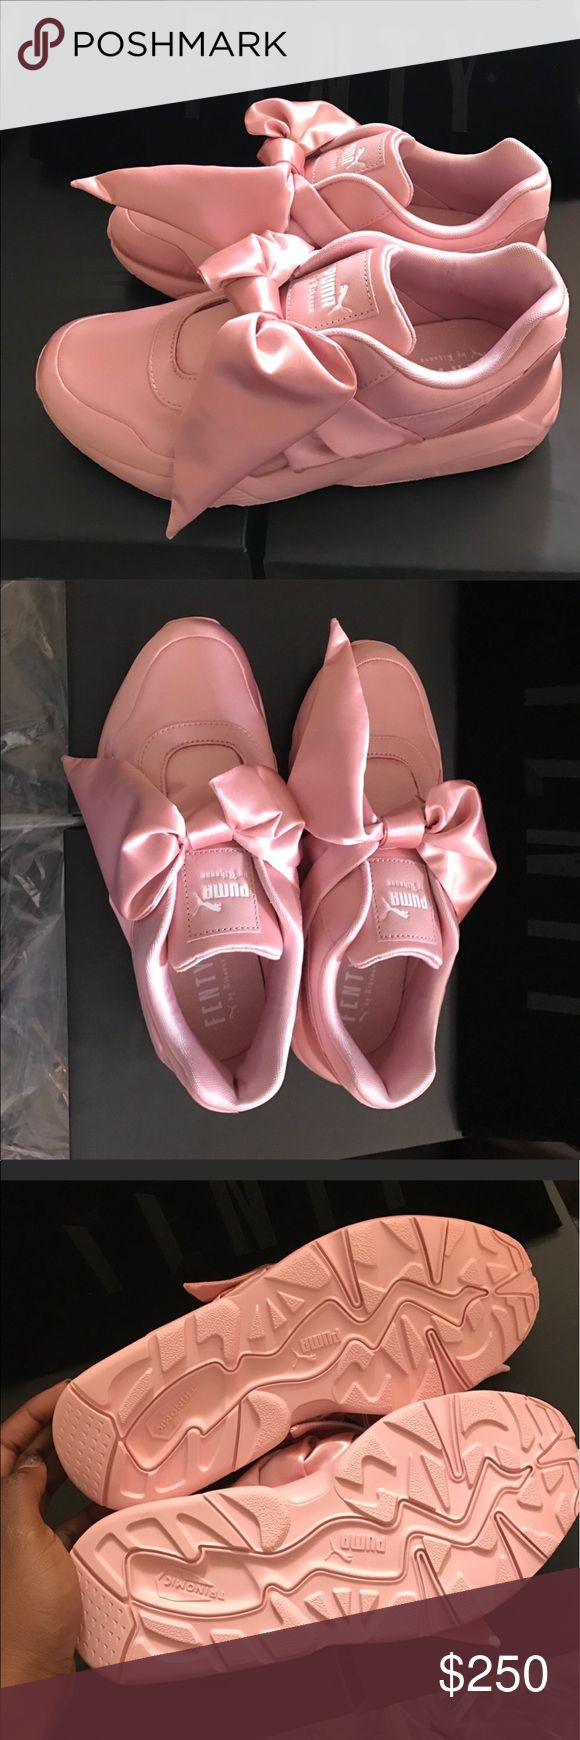 Rihanna Fenty x puma satin pink bow sneakers New  authentic brand New Rihanna Fenty x puma pink satin bow sneakers with box and dust bag Puma Shoes Sneakers